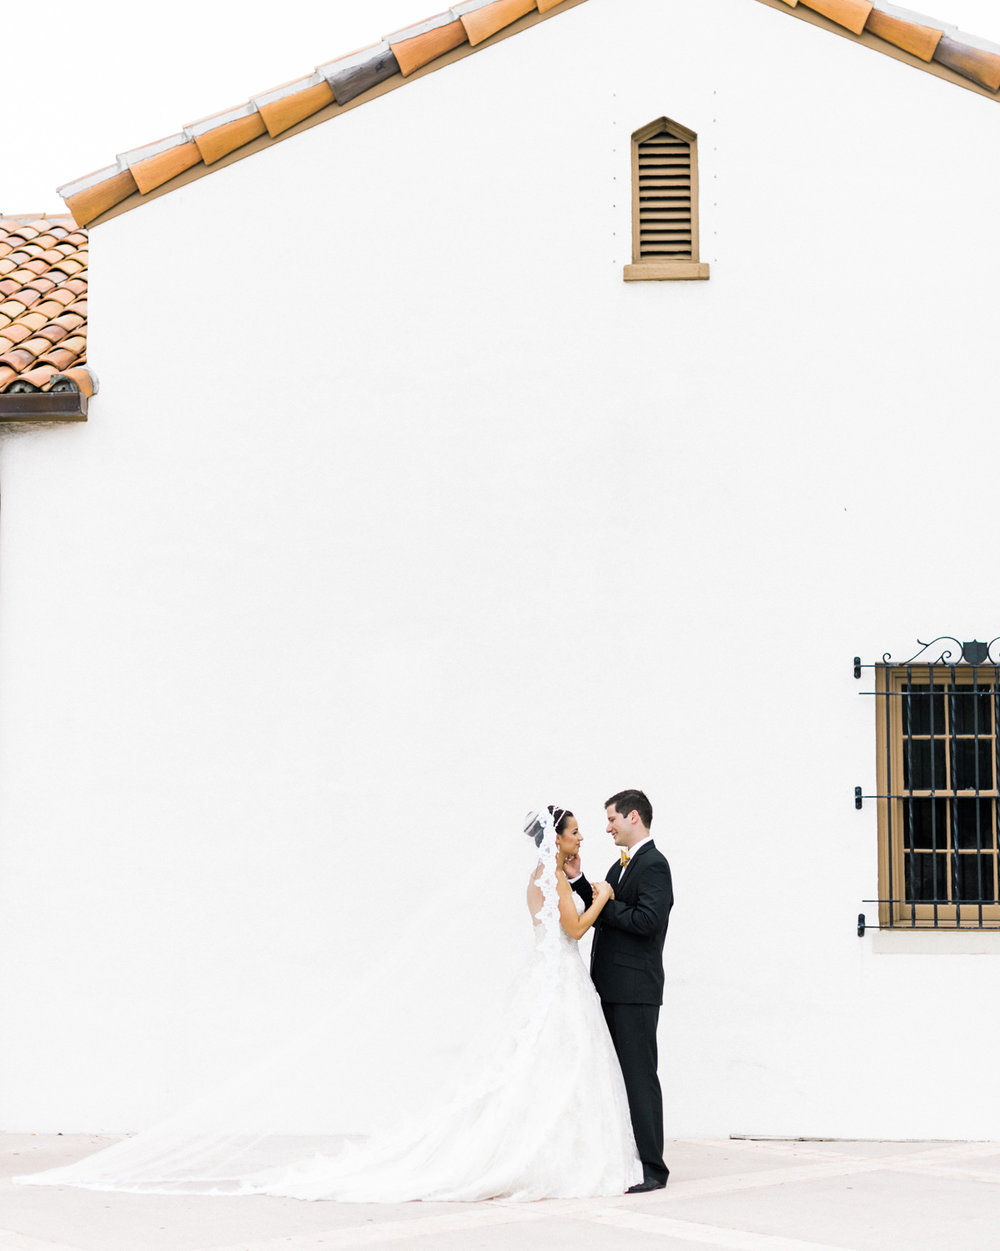 Charlottesville_Miami_Film_Wedding_Photographer-33.jpg